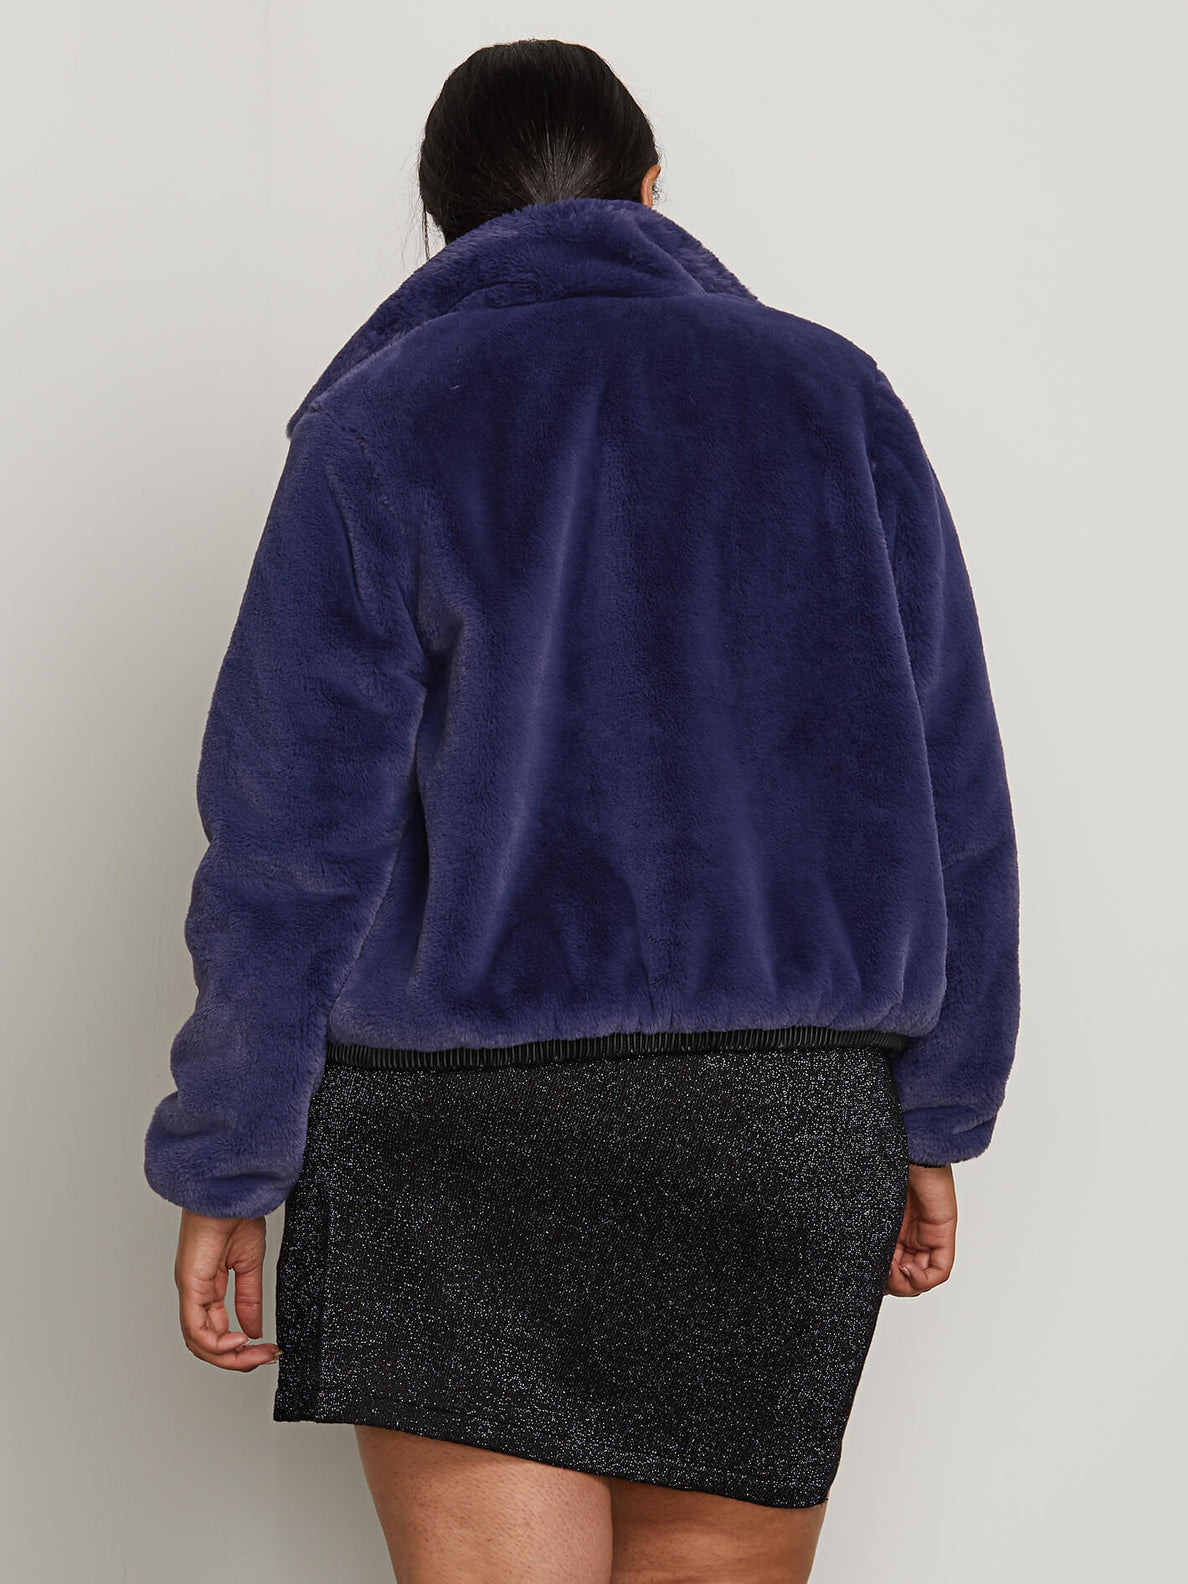 Fuzzy Fresh Jacket In Sea Navy, Back Plus Size View